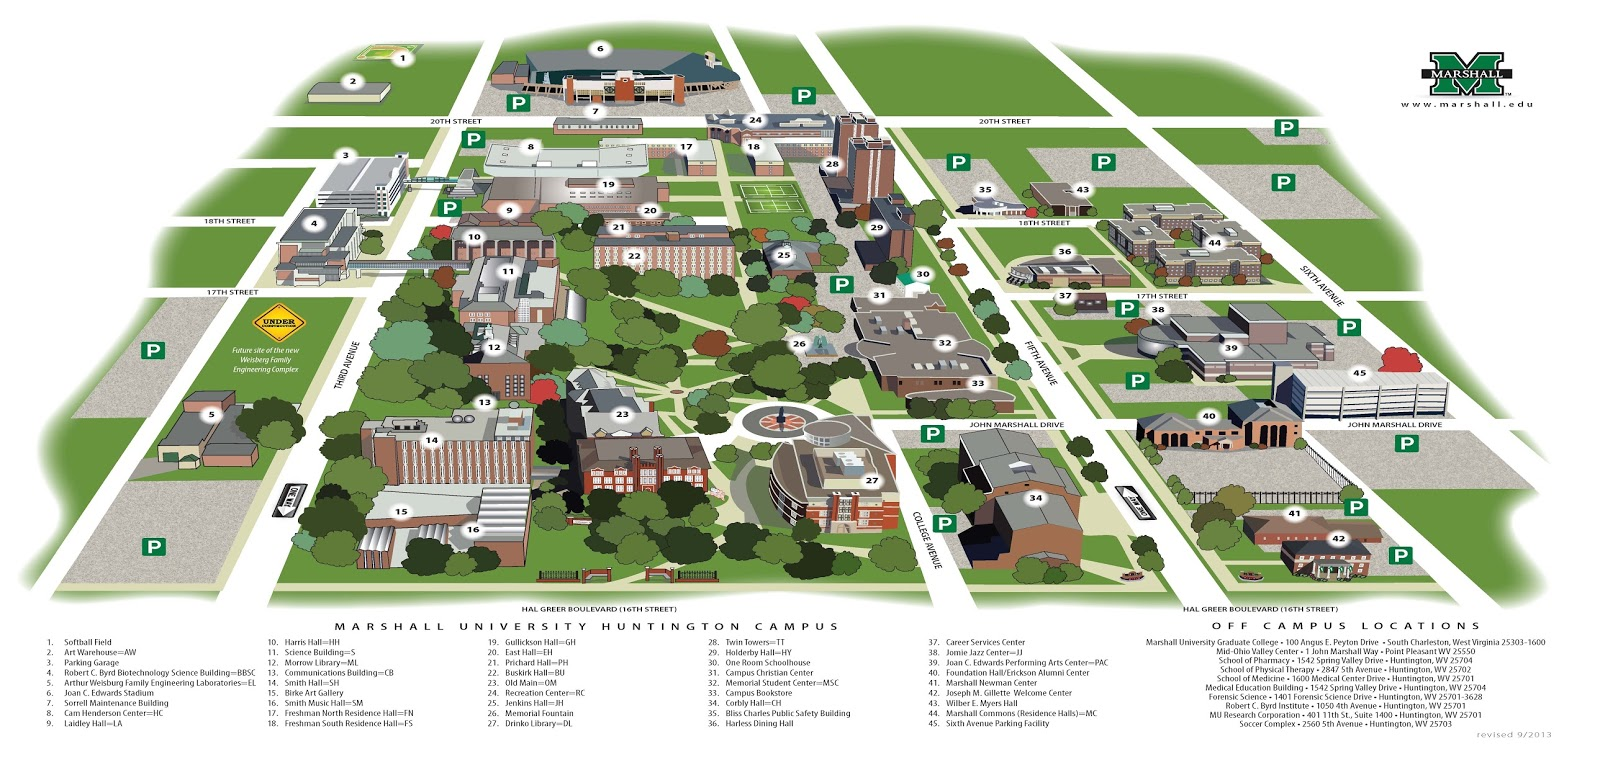 Husson University Campus Map.Marshall University Campus Map Park Ideas